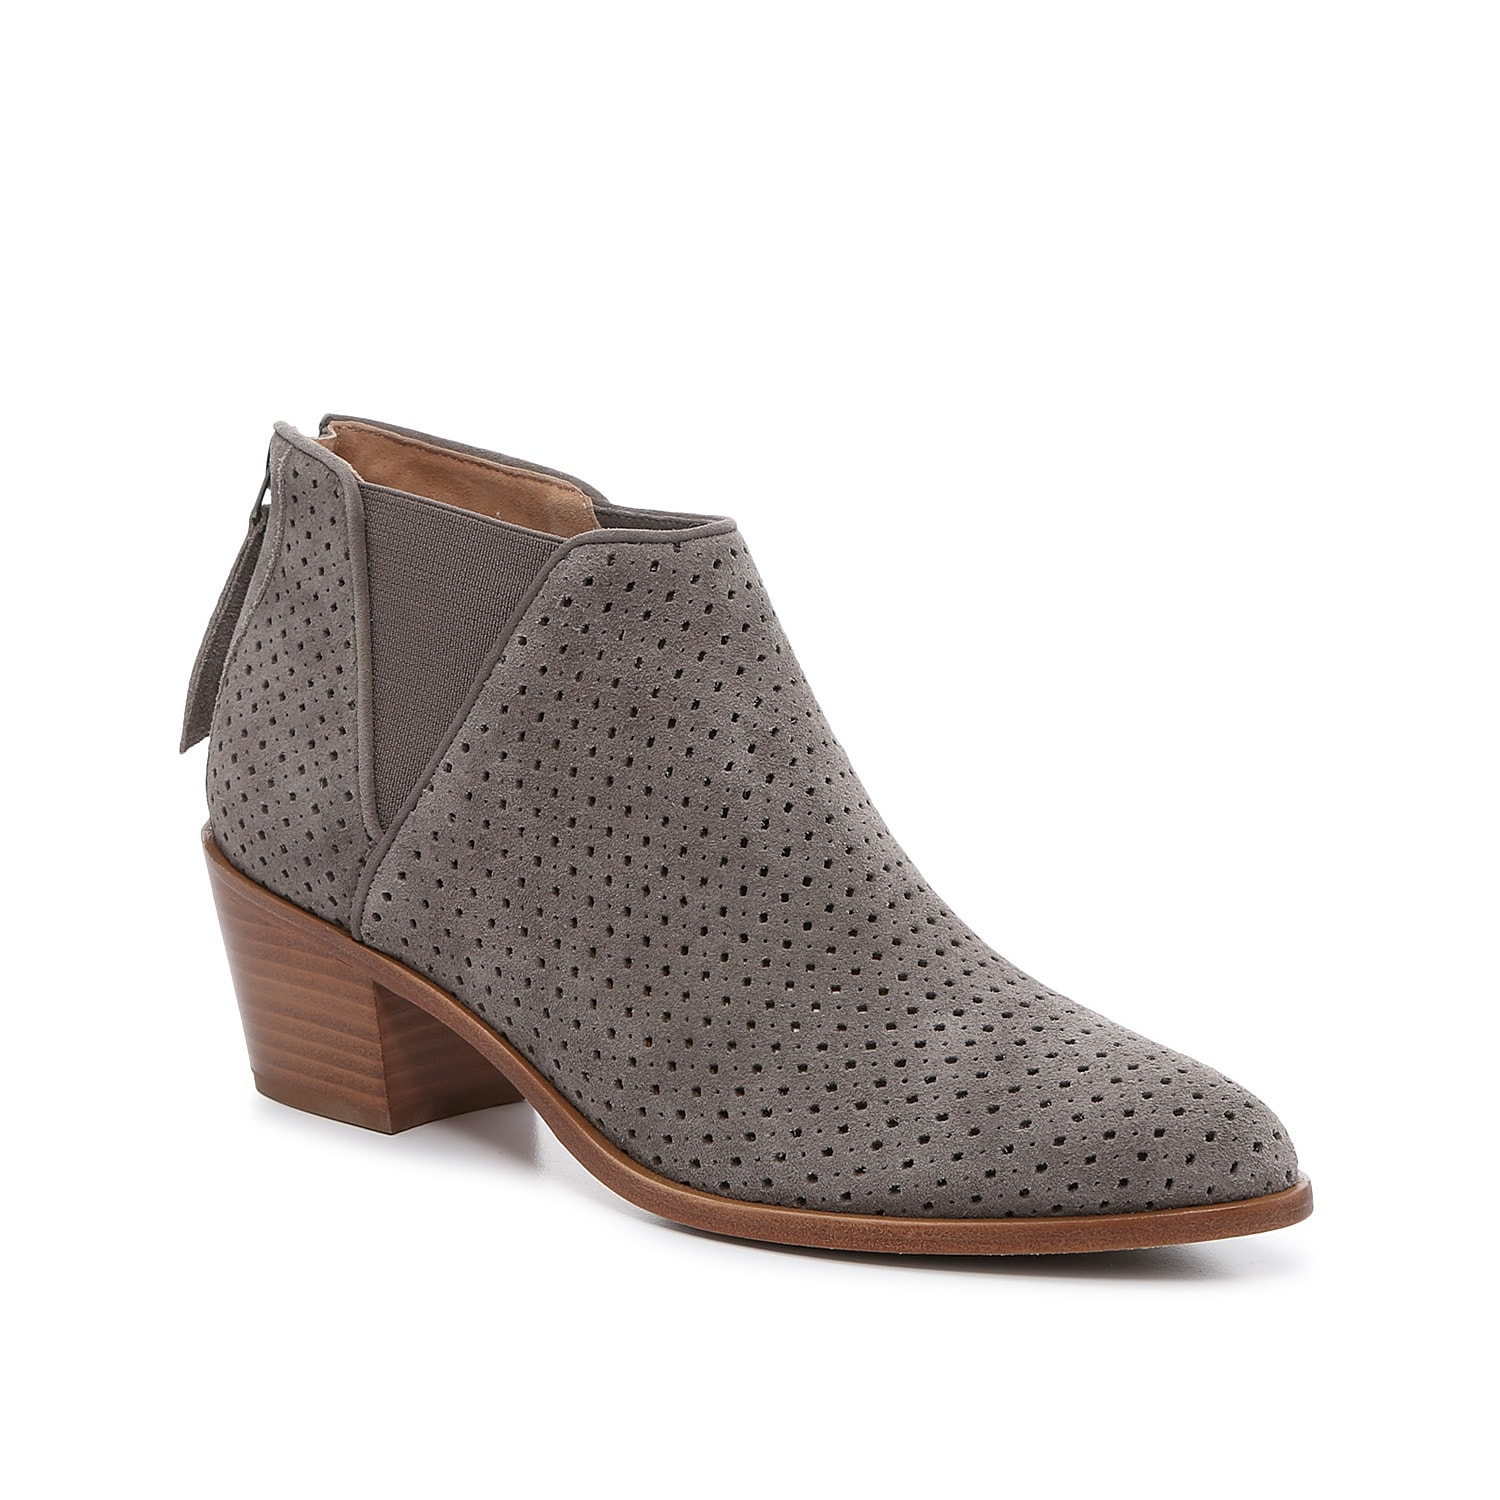 The Tisha shootie from Trask is a minimal ankle boot featuring a low-slung heel, Chelsea-style goring for a hint of stretch, and hand-stitched detailing along the midsole. A stacked Cuban heel adds interesting angles to these low-profile booties.Click here for Boot Measuring Guide.